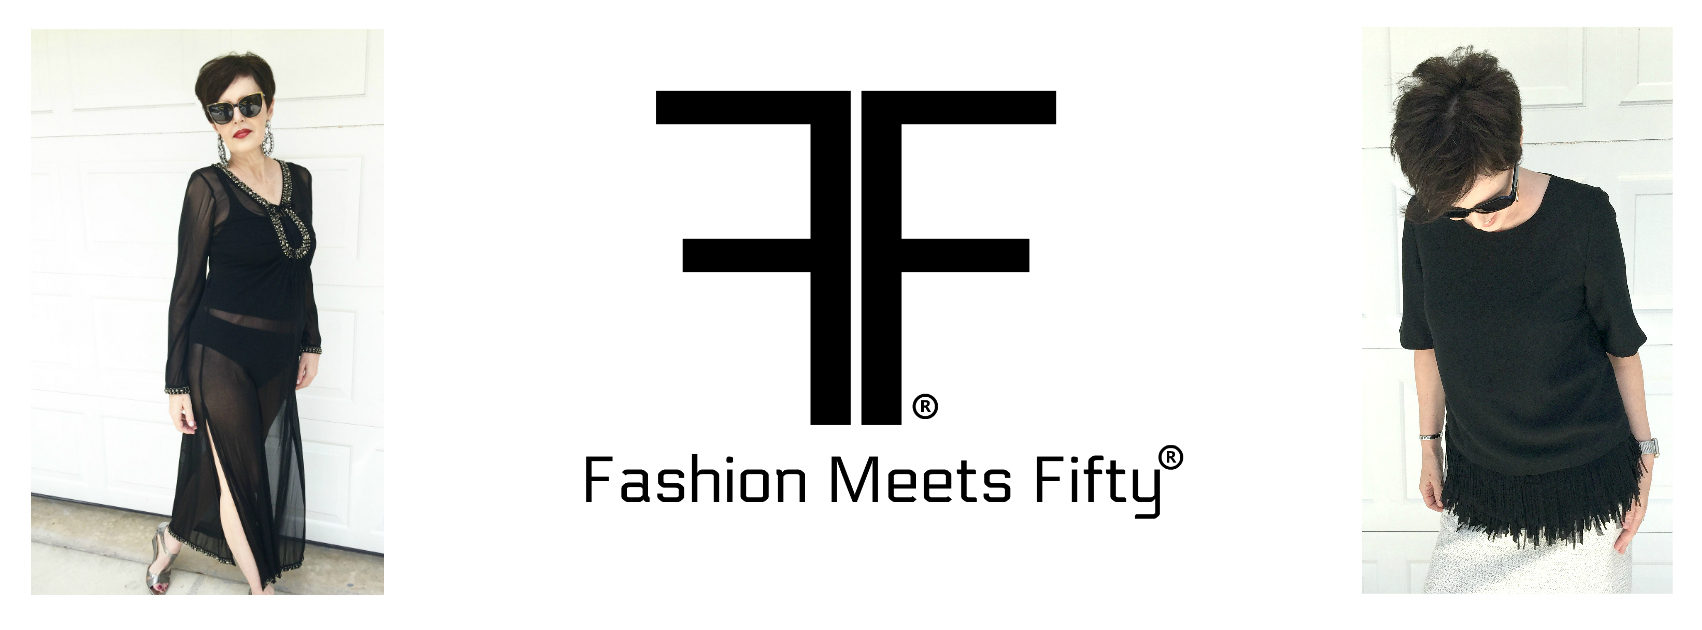 Fashion Meets Fifty